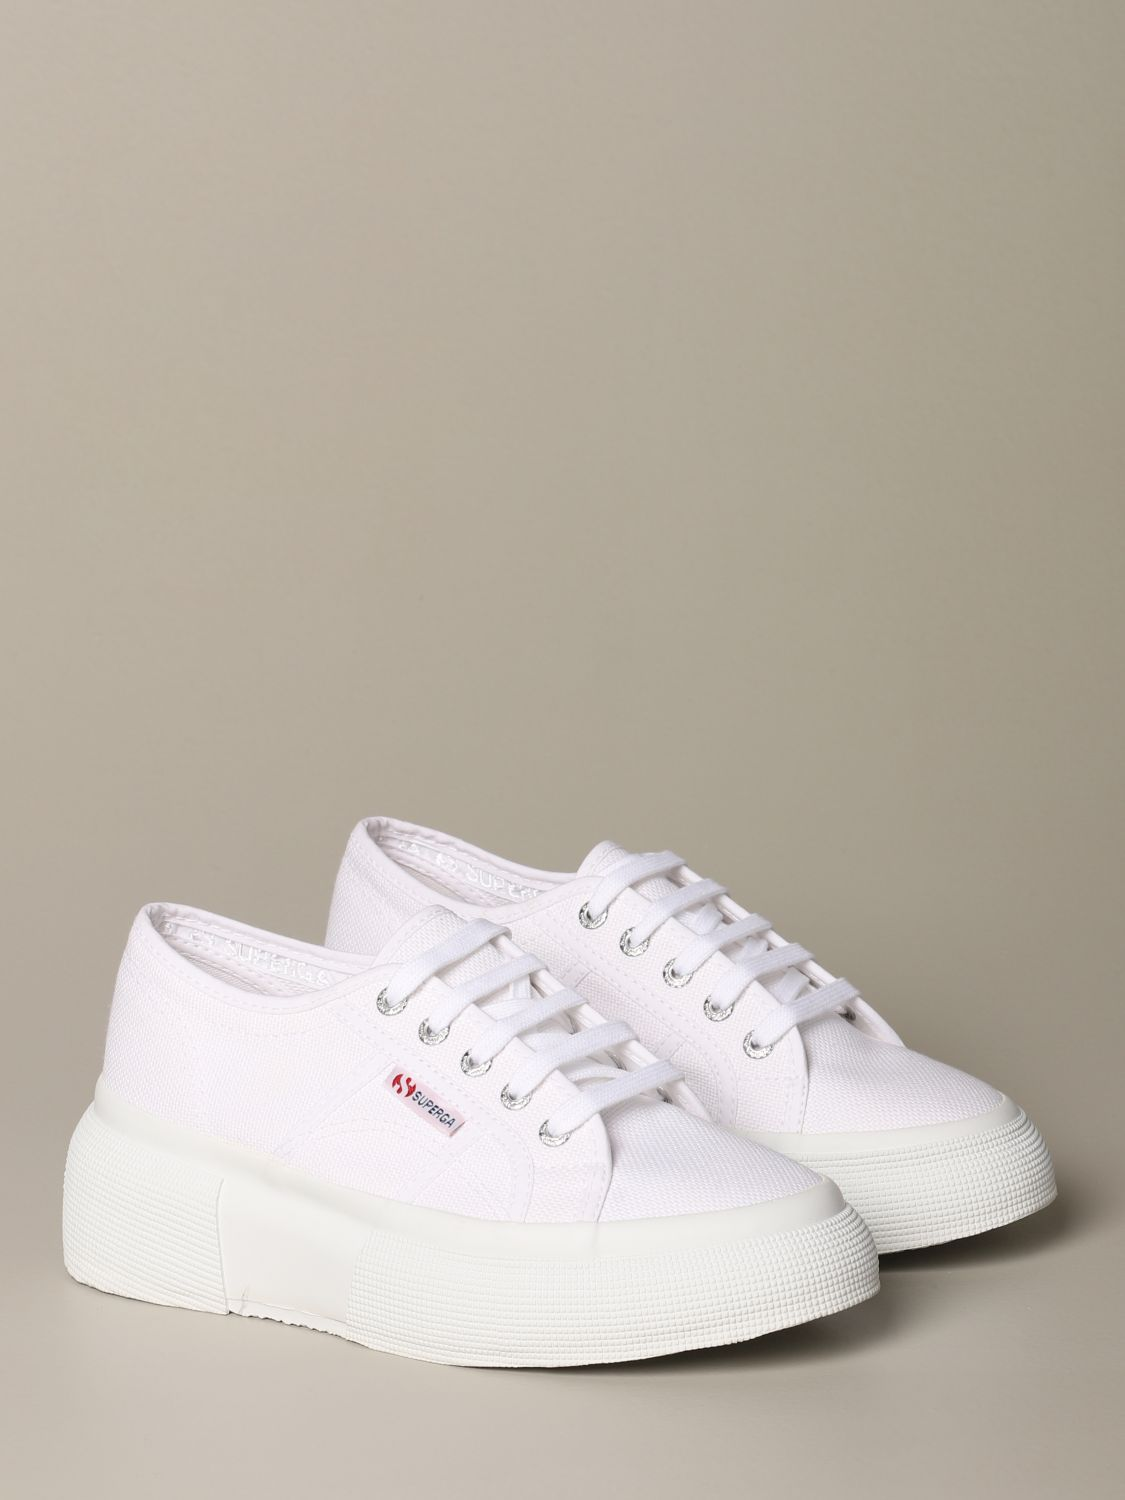 Sneakers Superga: Shoes women Superga white 2